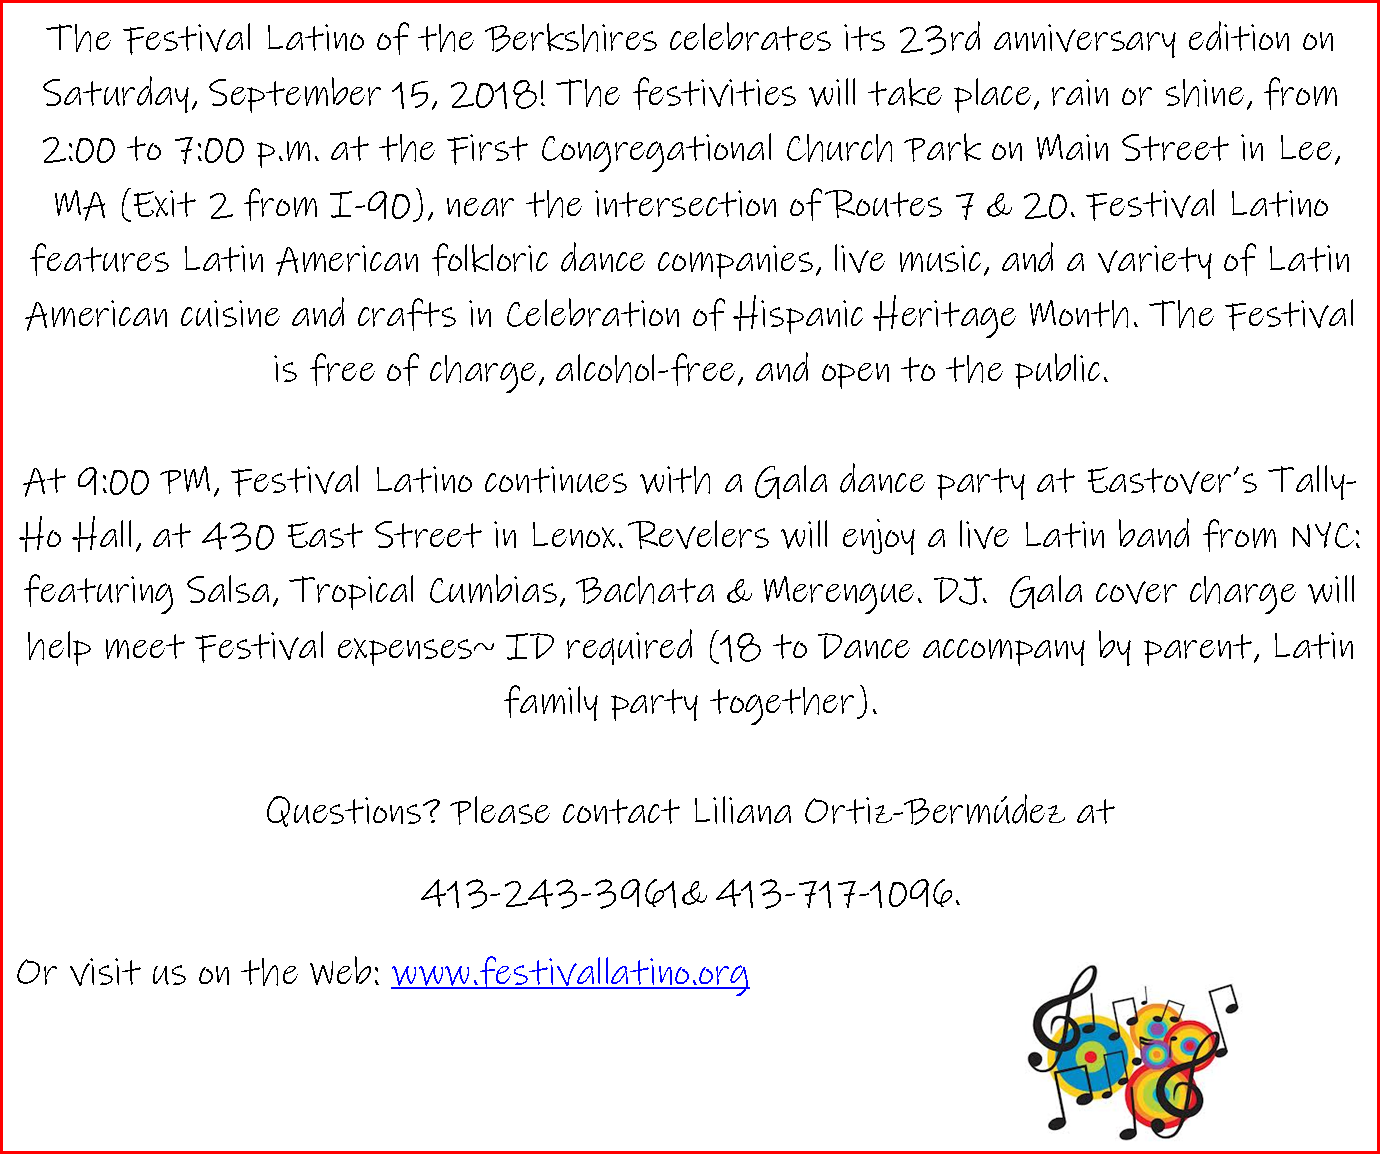 Latino Festival of the Berkshires